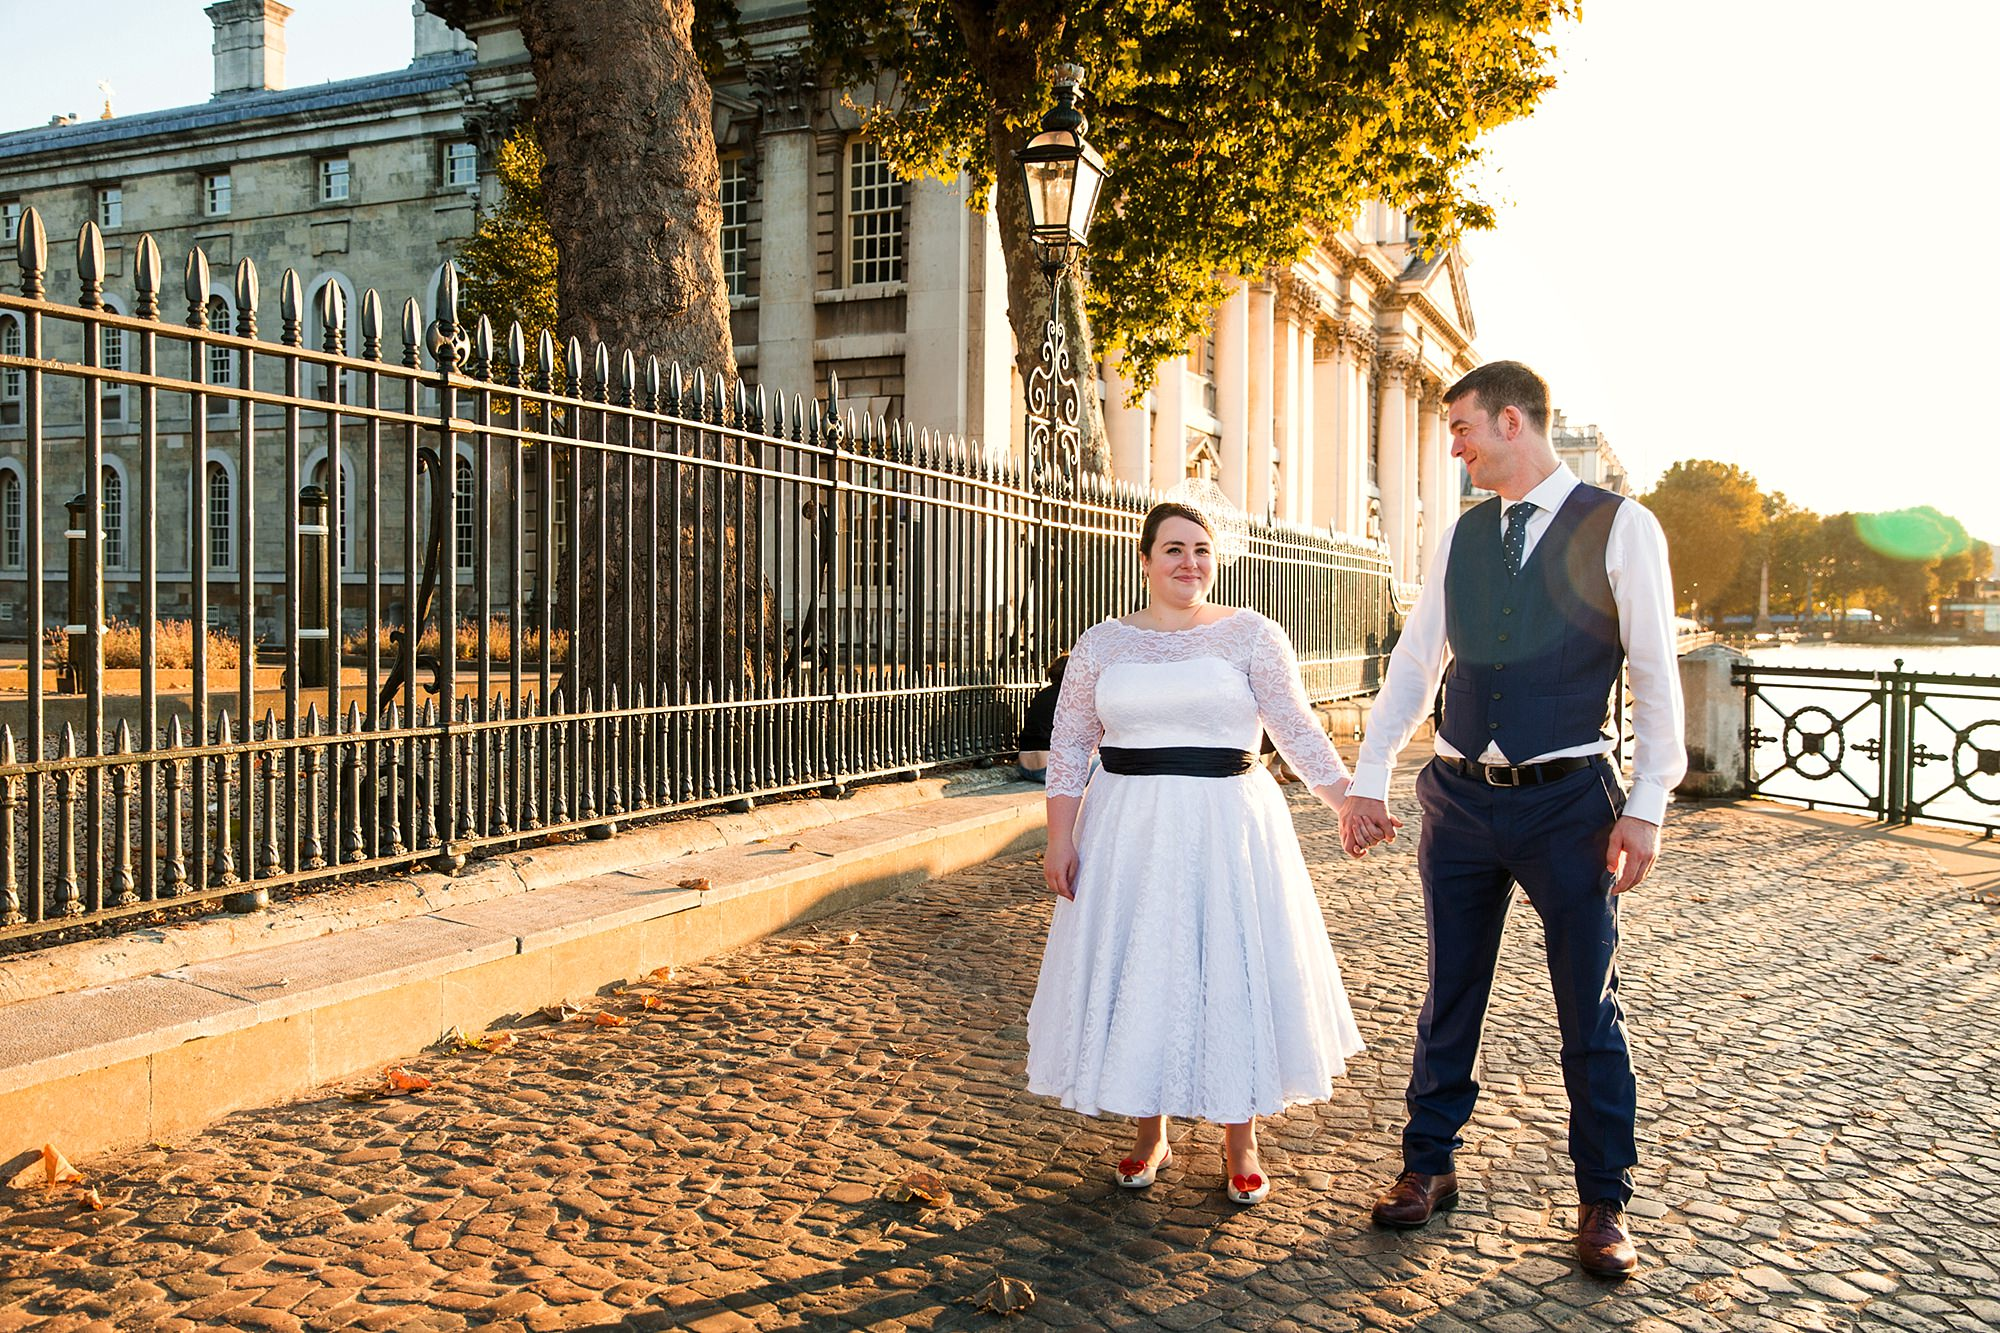 Trafalgar Tavern wedding bride and groom during golden hour in London